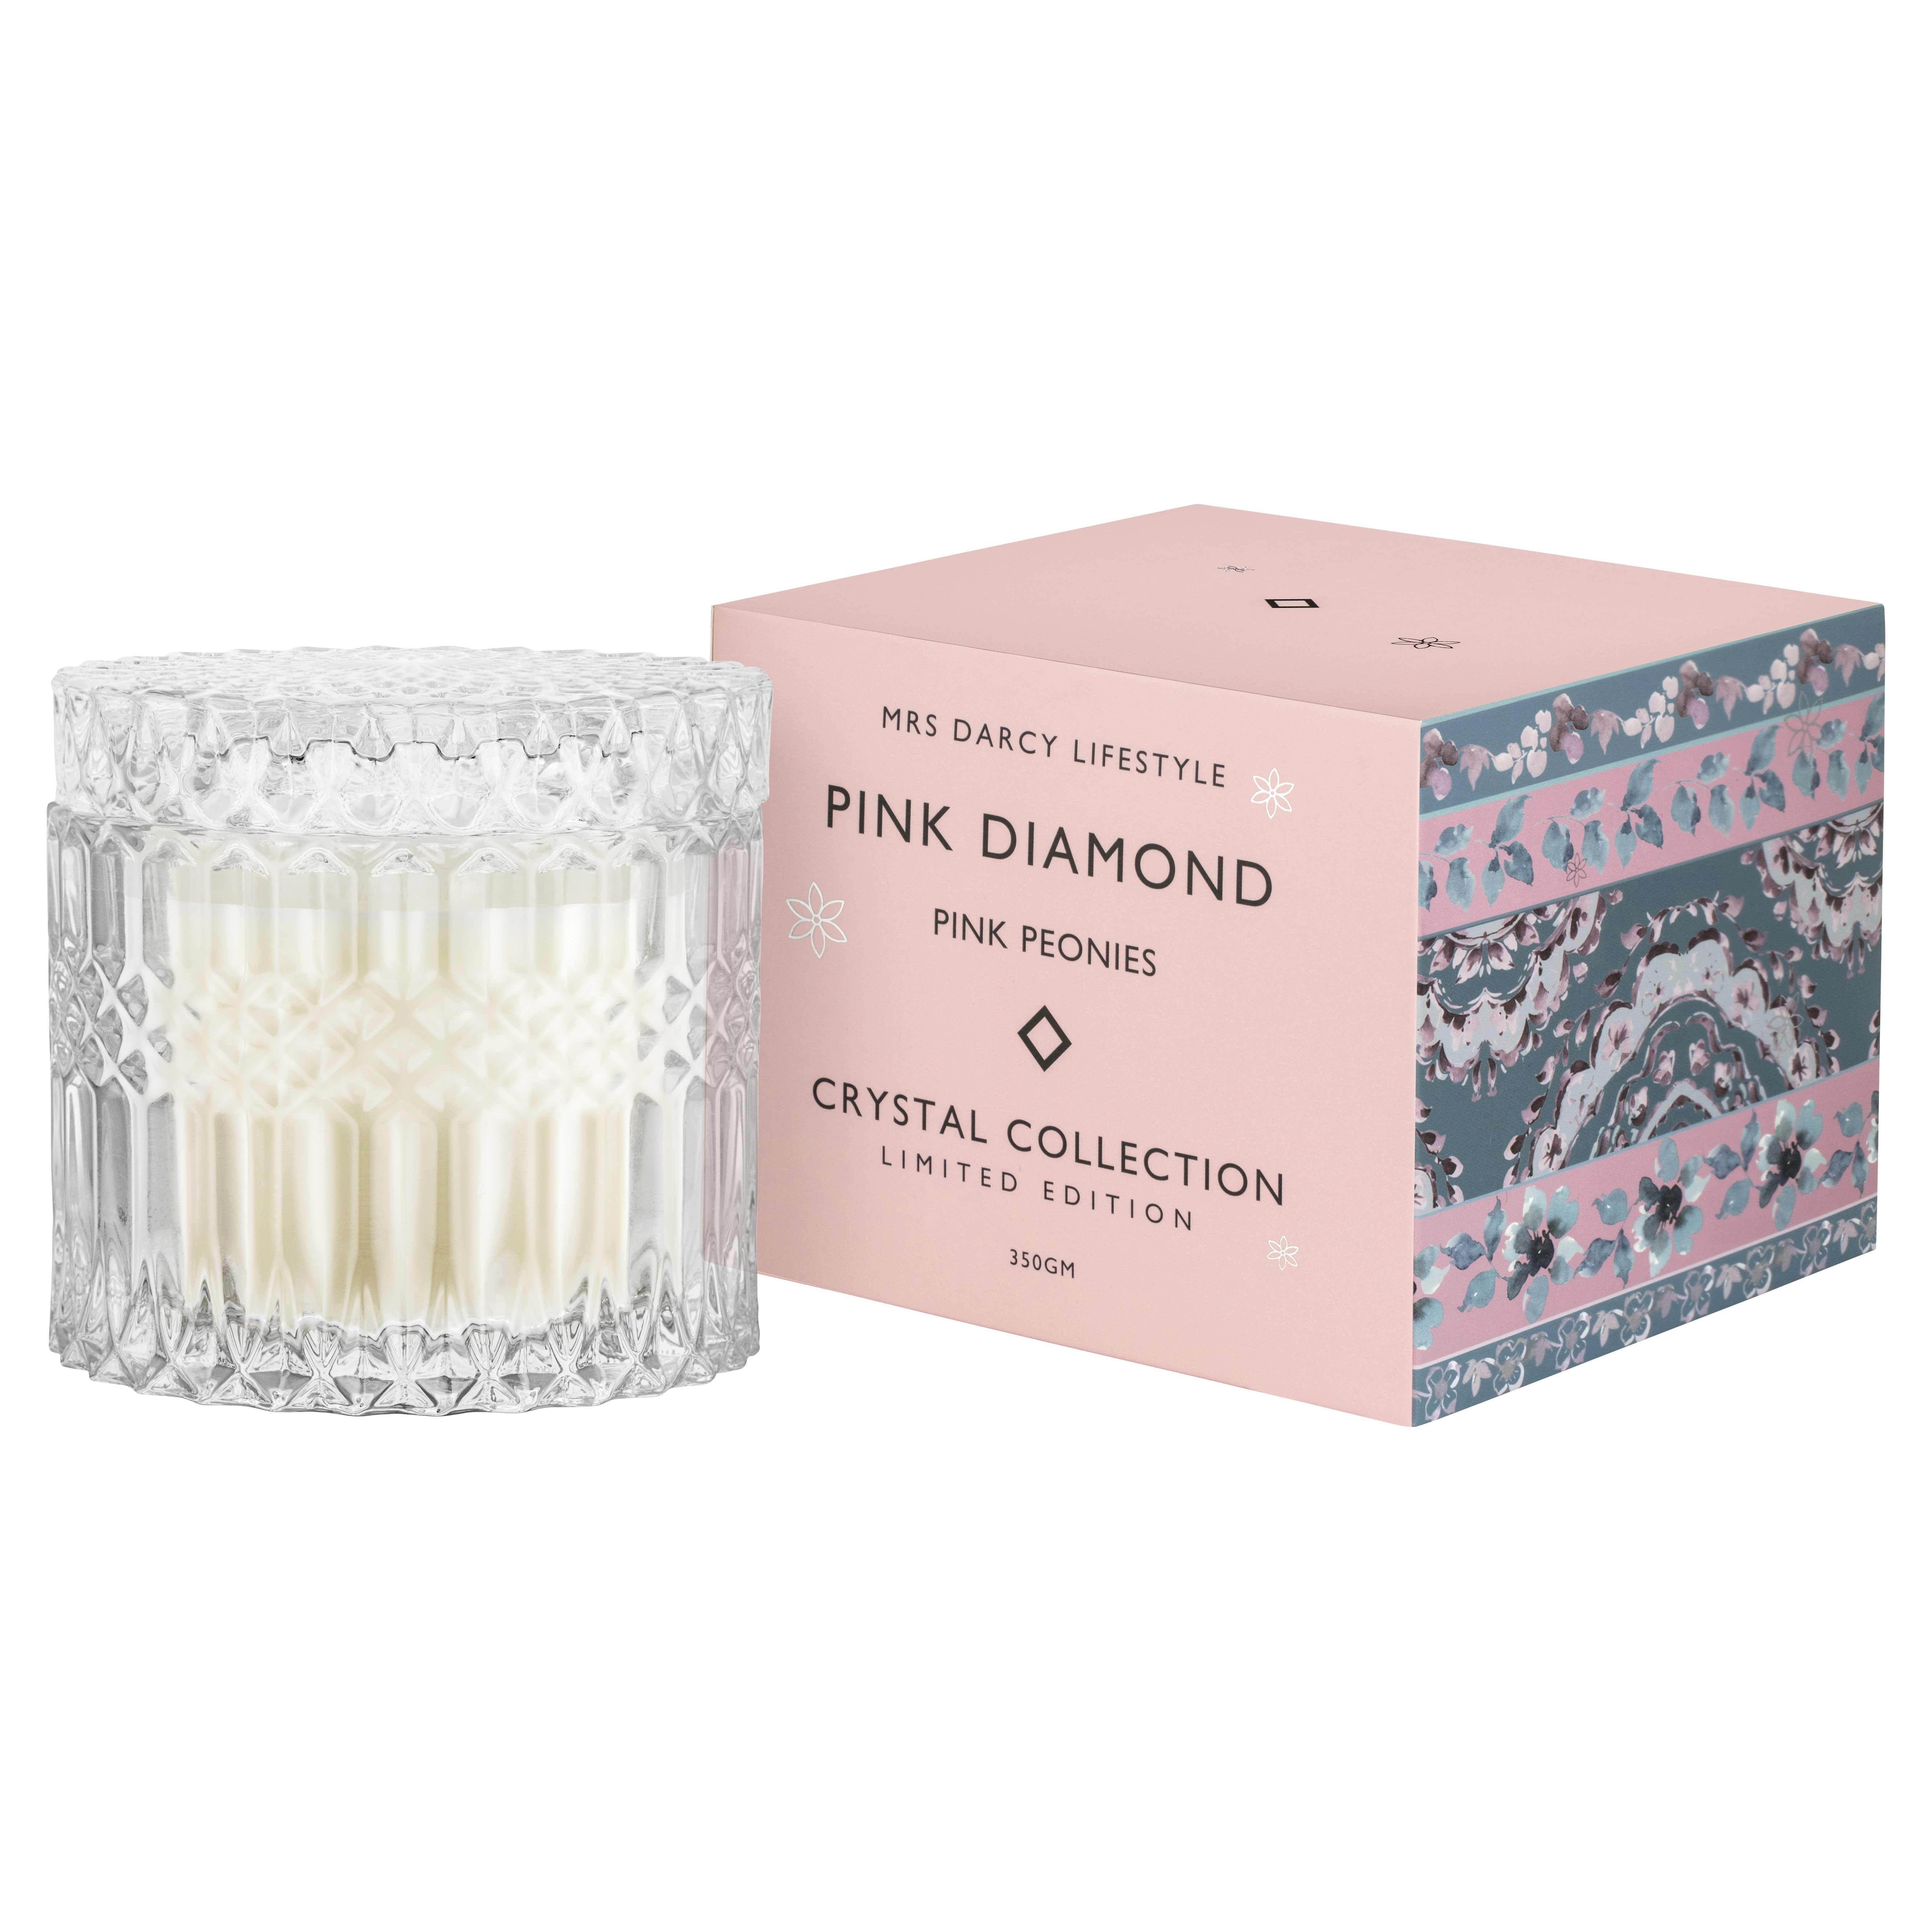 Mrs Darcy, Candle Pink Diamond, Pink Peonies, RRP $39.95